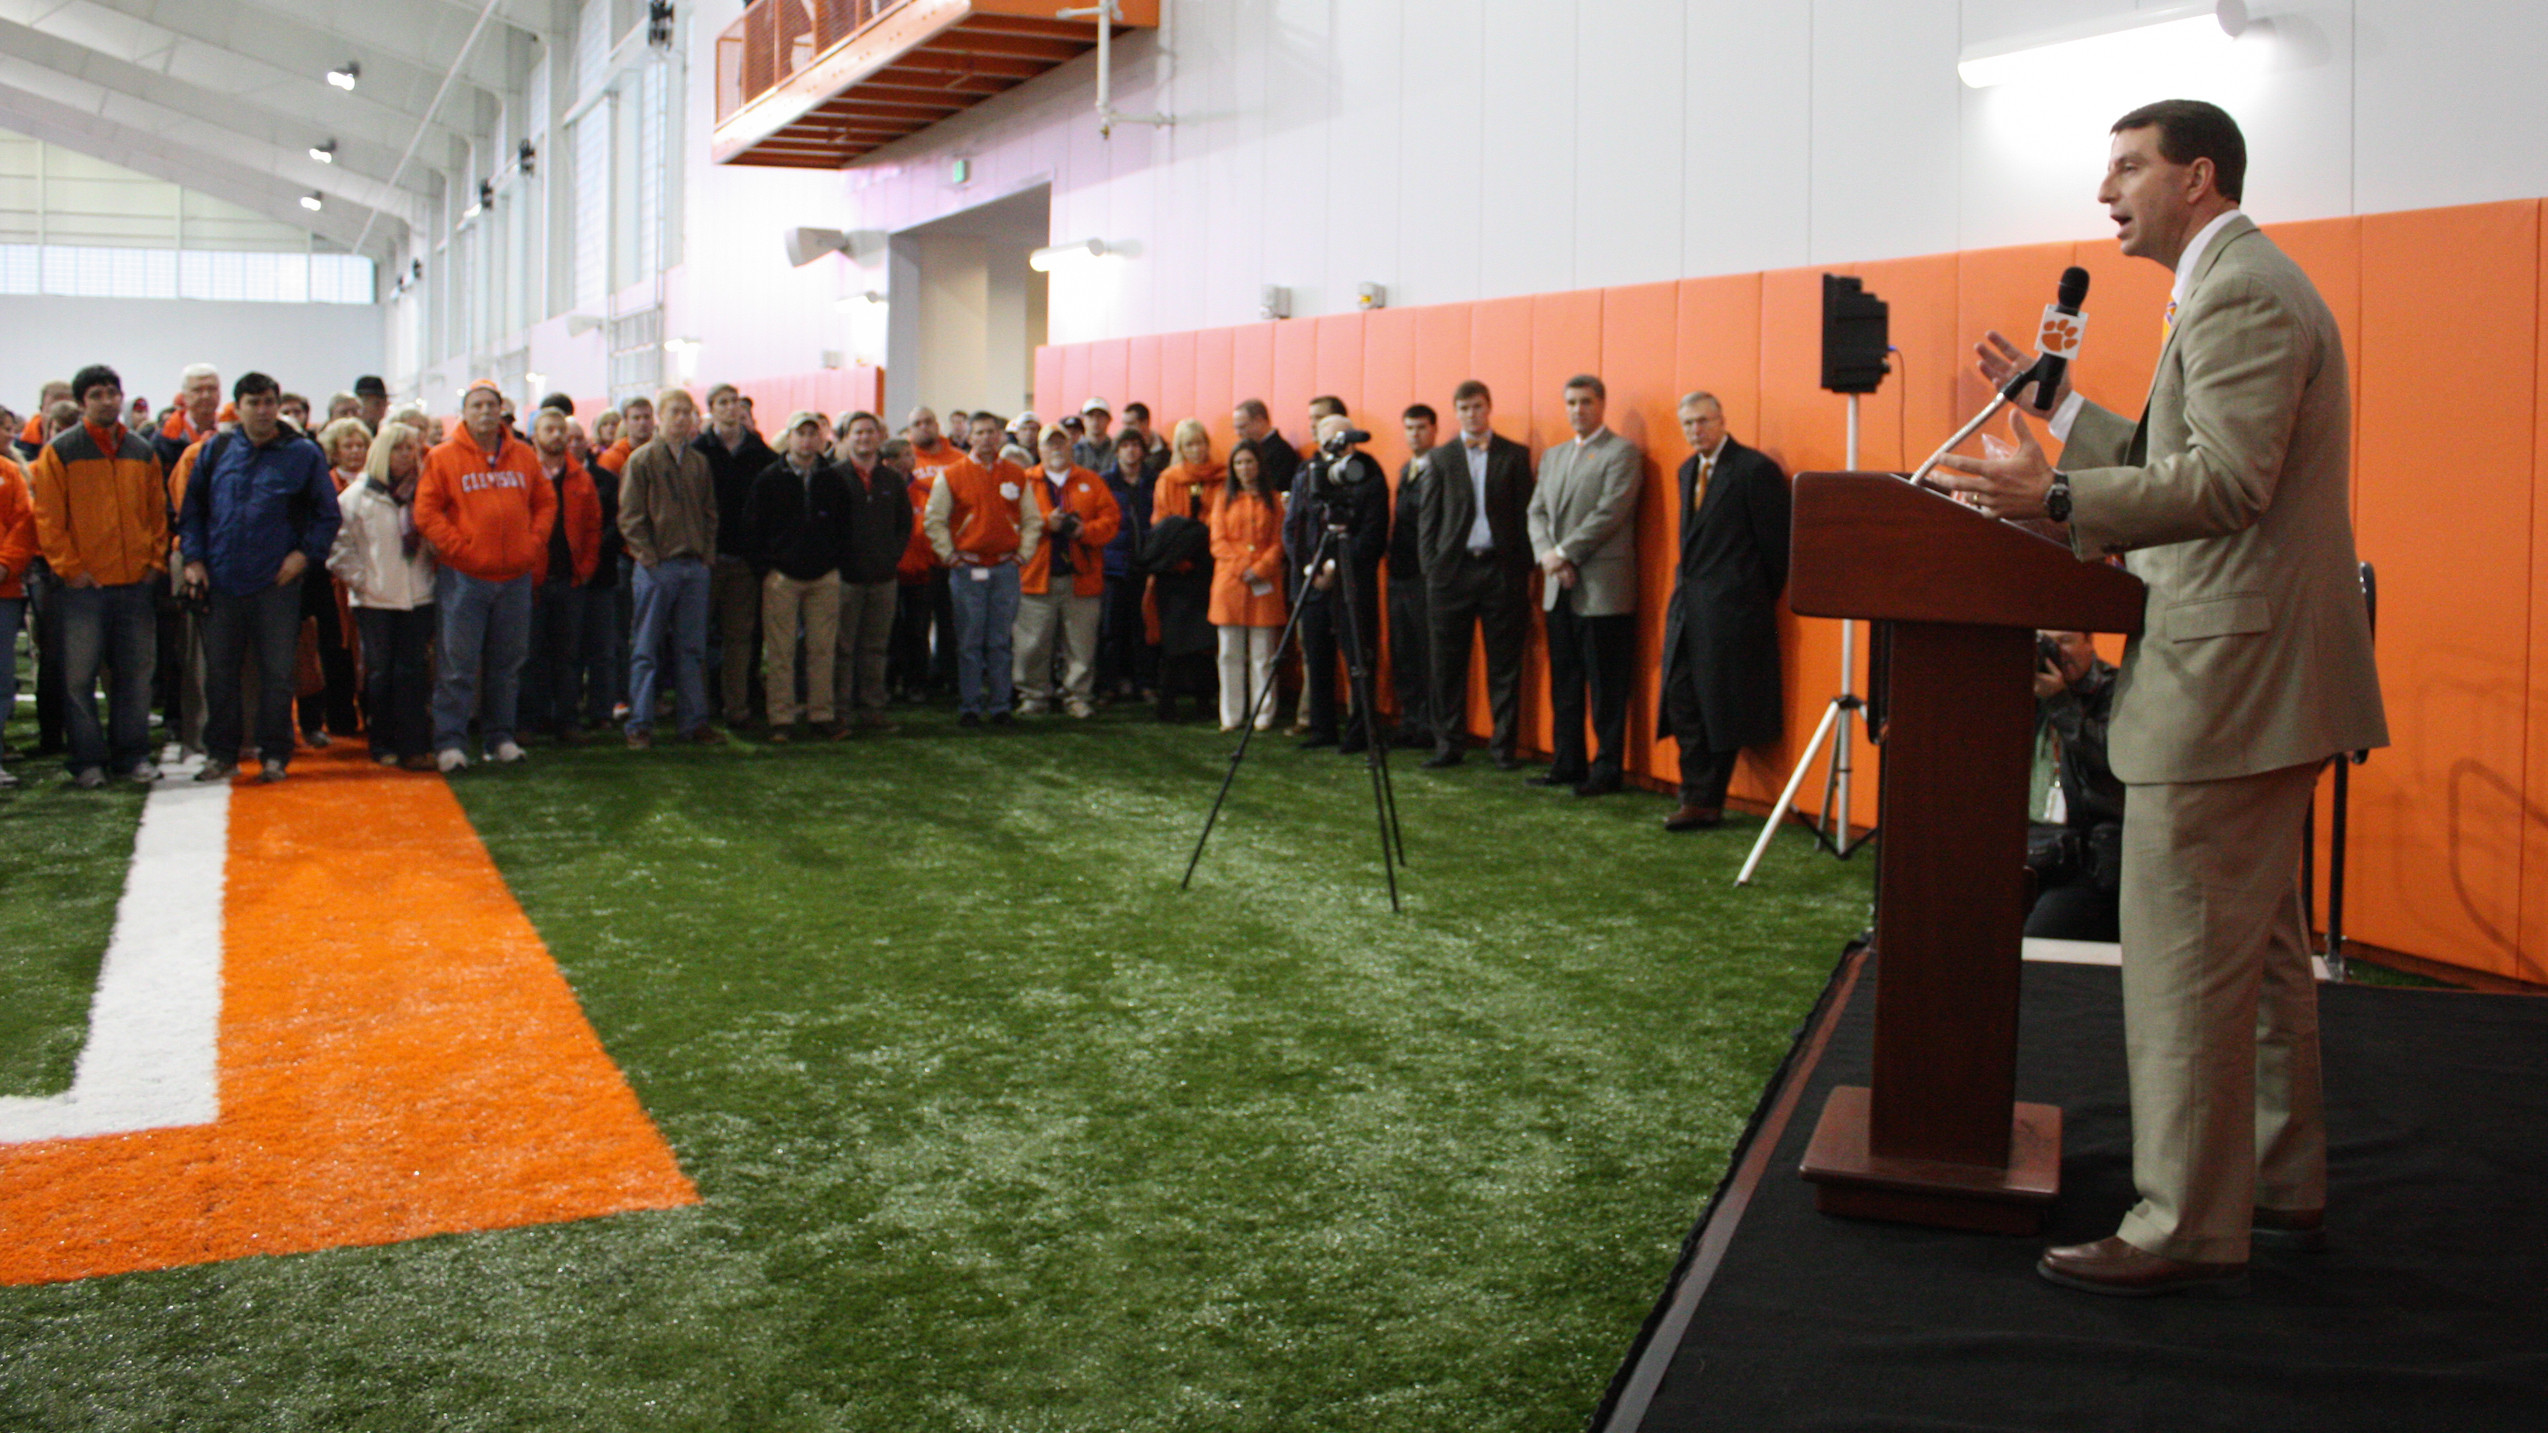 Exclusive: Clemson Unveils Indoor Practice Facility in Fitting Conditions